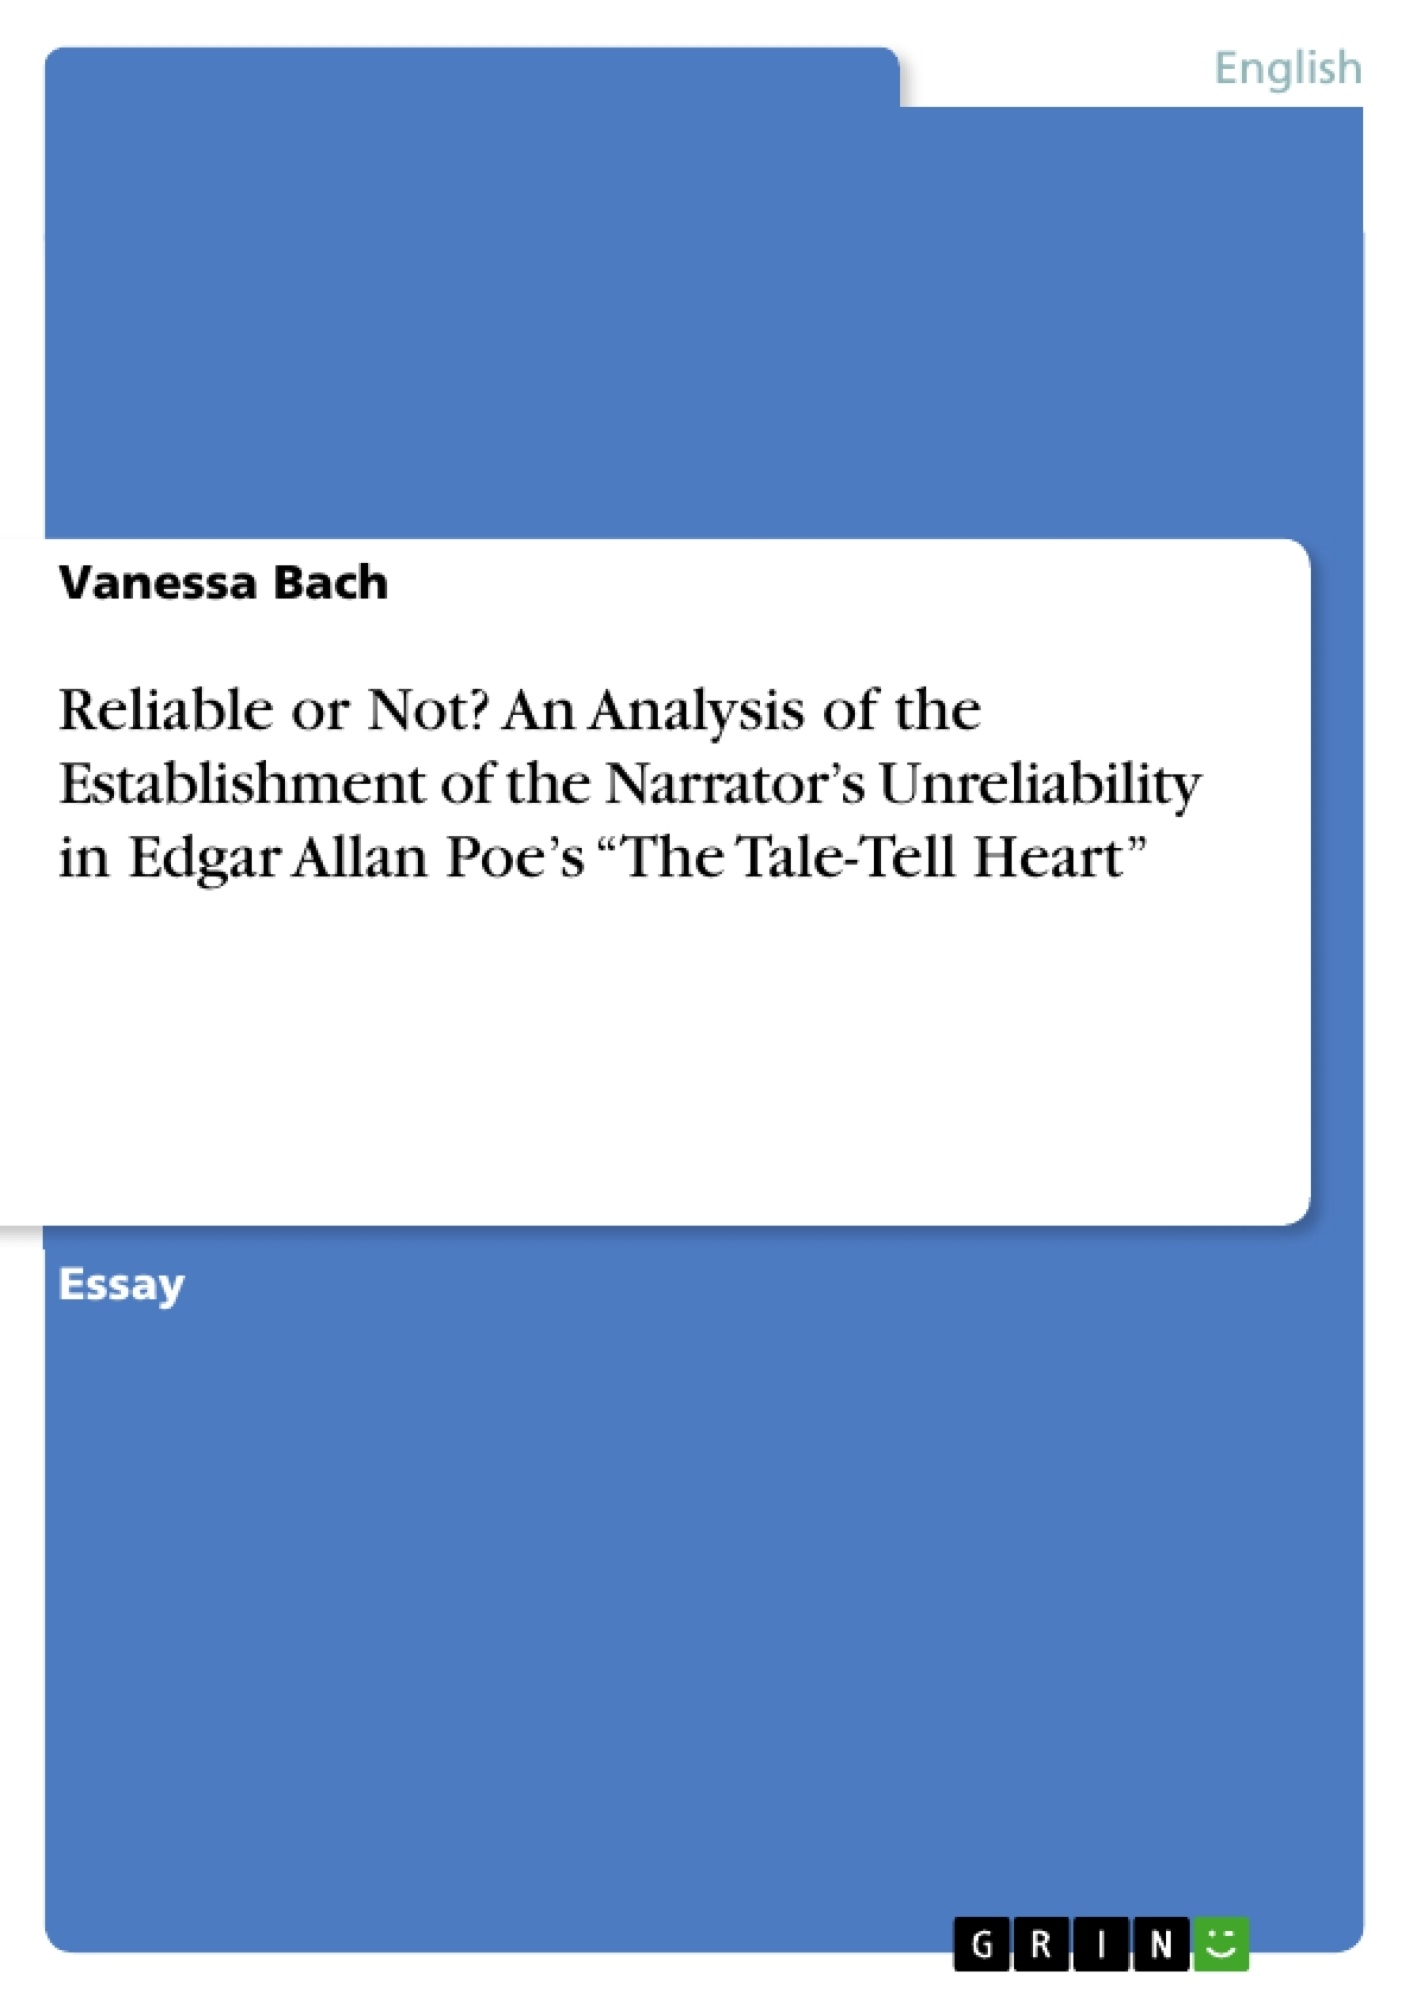 """Title: Reliable or Not? An Analysis of the Establishment of the Narrator's Unreliability in Edgar Allan Poe's """"The Tale-Tell Heart"""""""